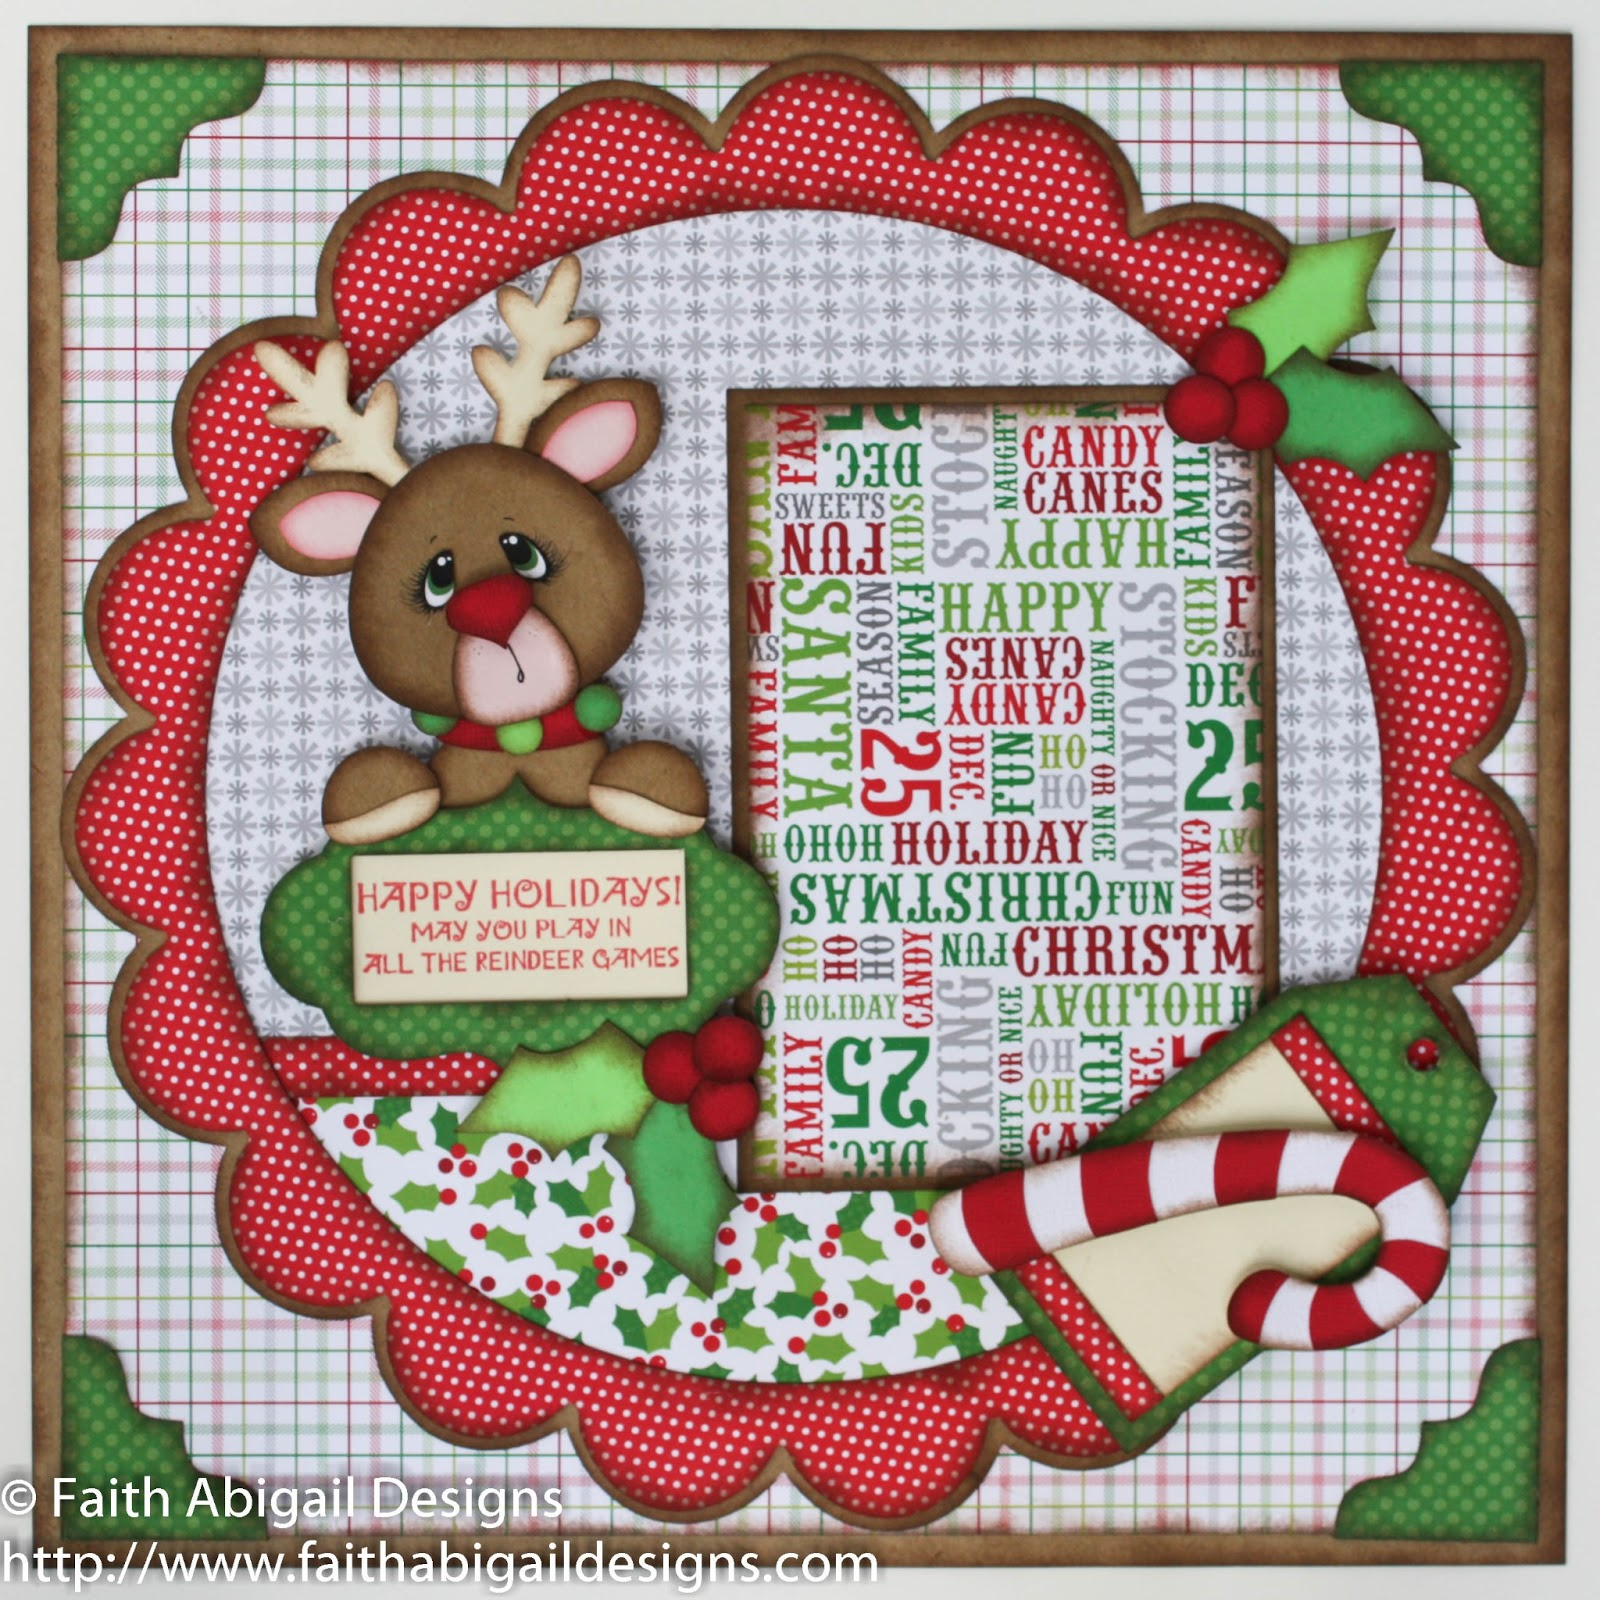 Scrapbook ideas black background - The Large Scalloped Background Was Cut At 11 25 The Reindeer Was Cut At 5 5 And His Facial Features Were Hand Sketched With A Black Ink Pen